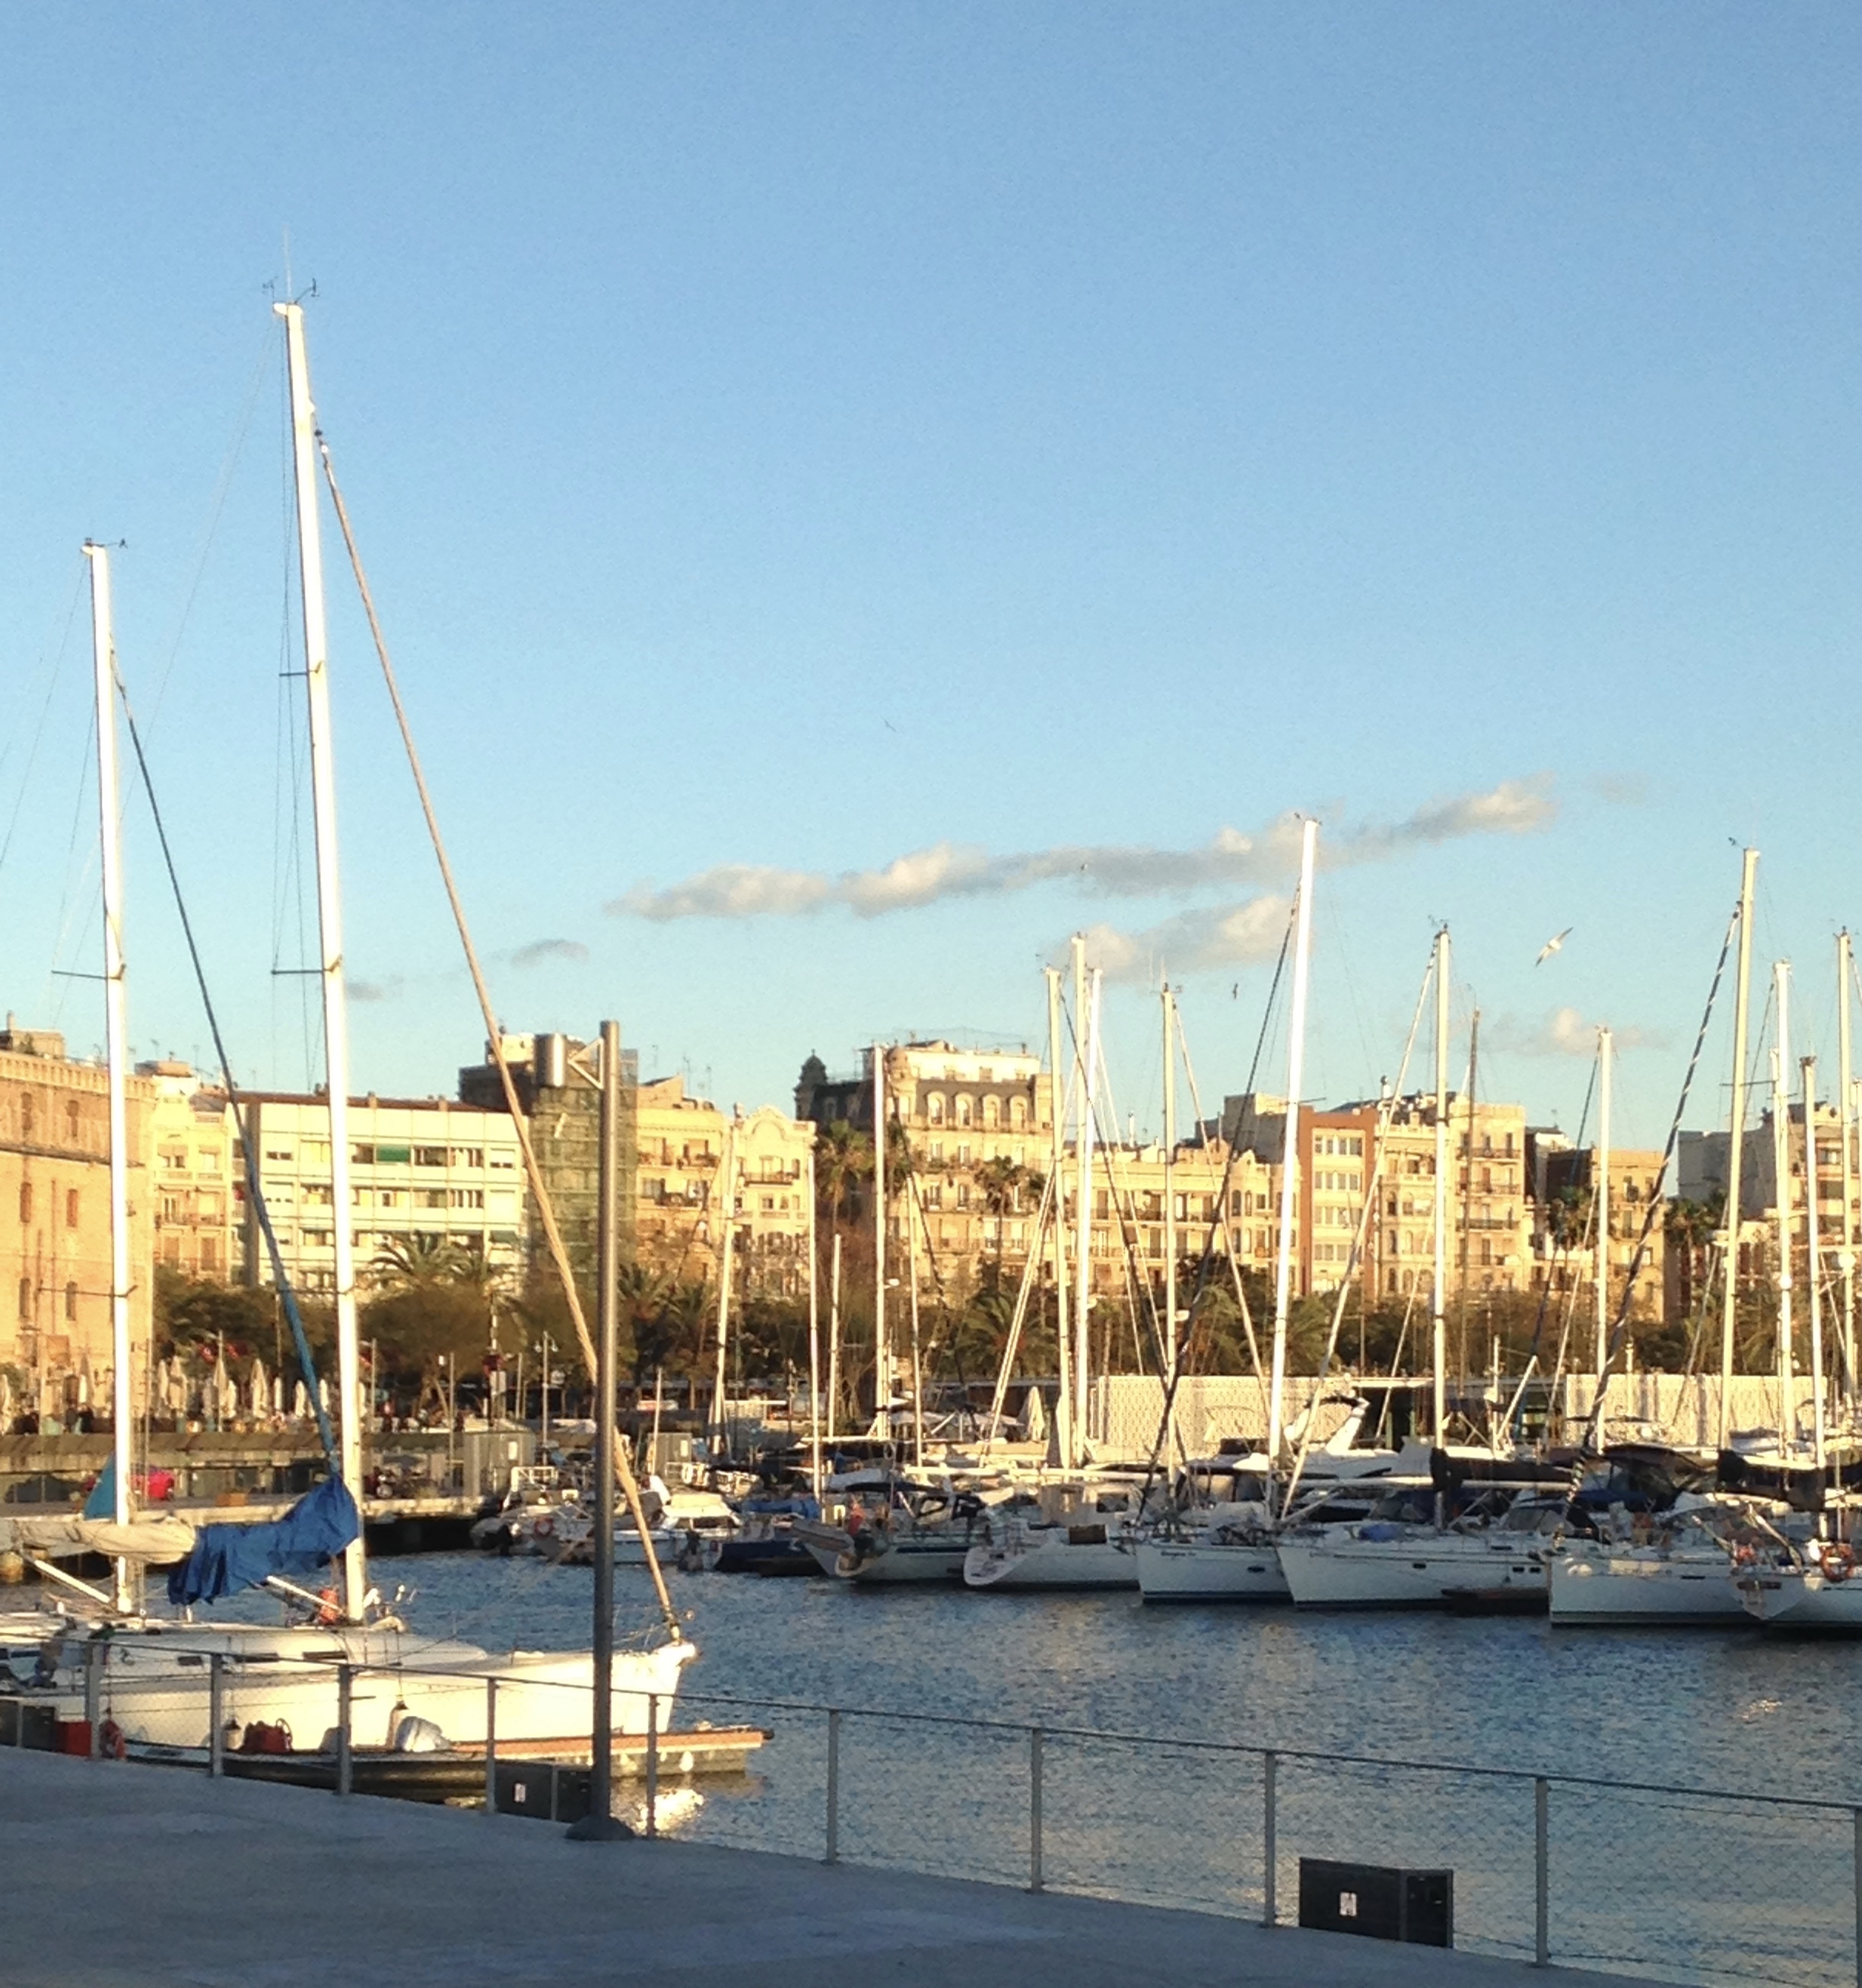 View of buildings of Barceloneta from marina